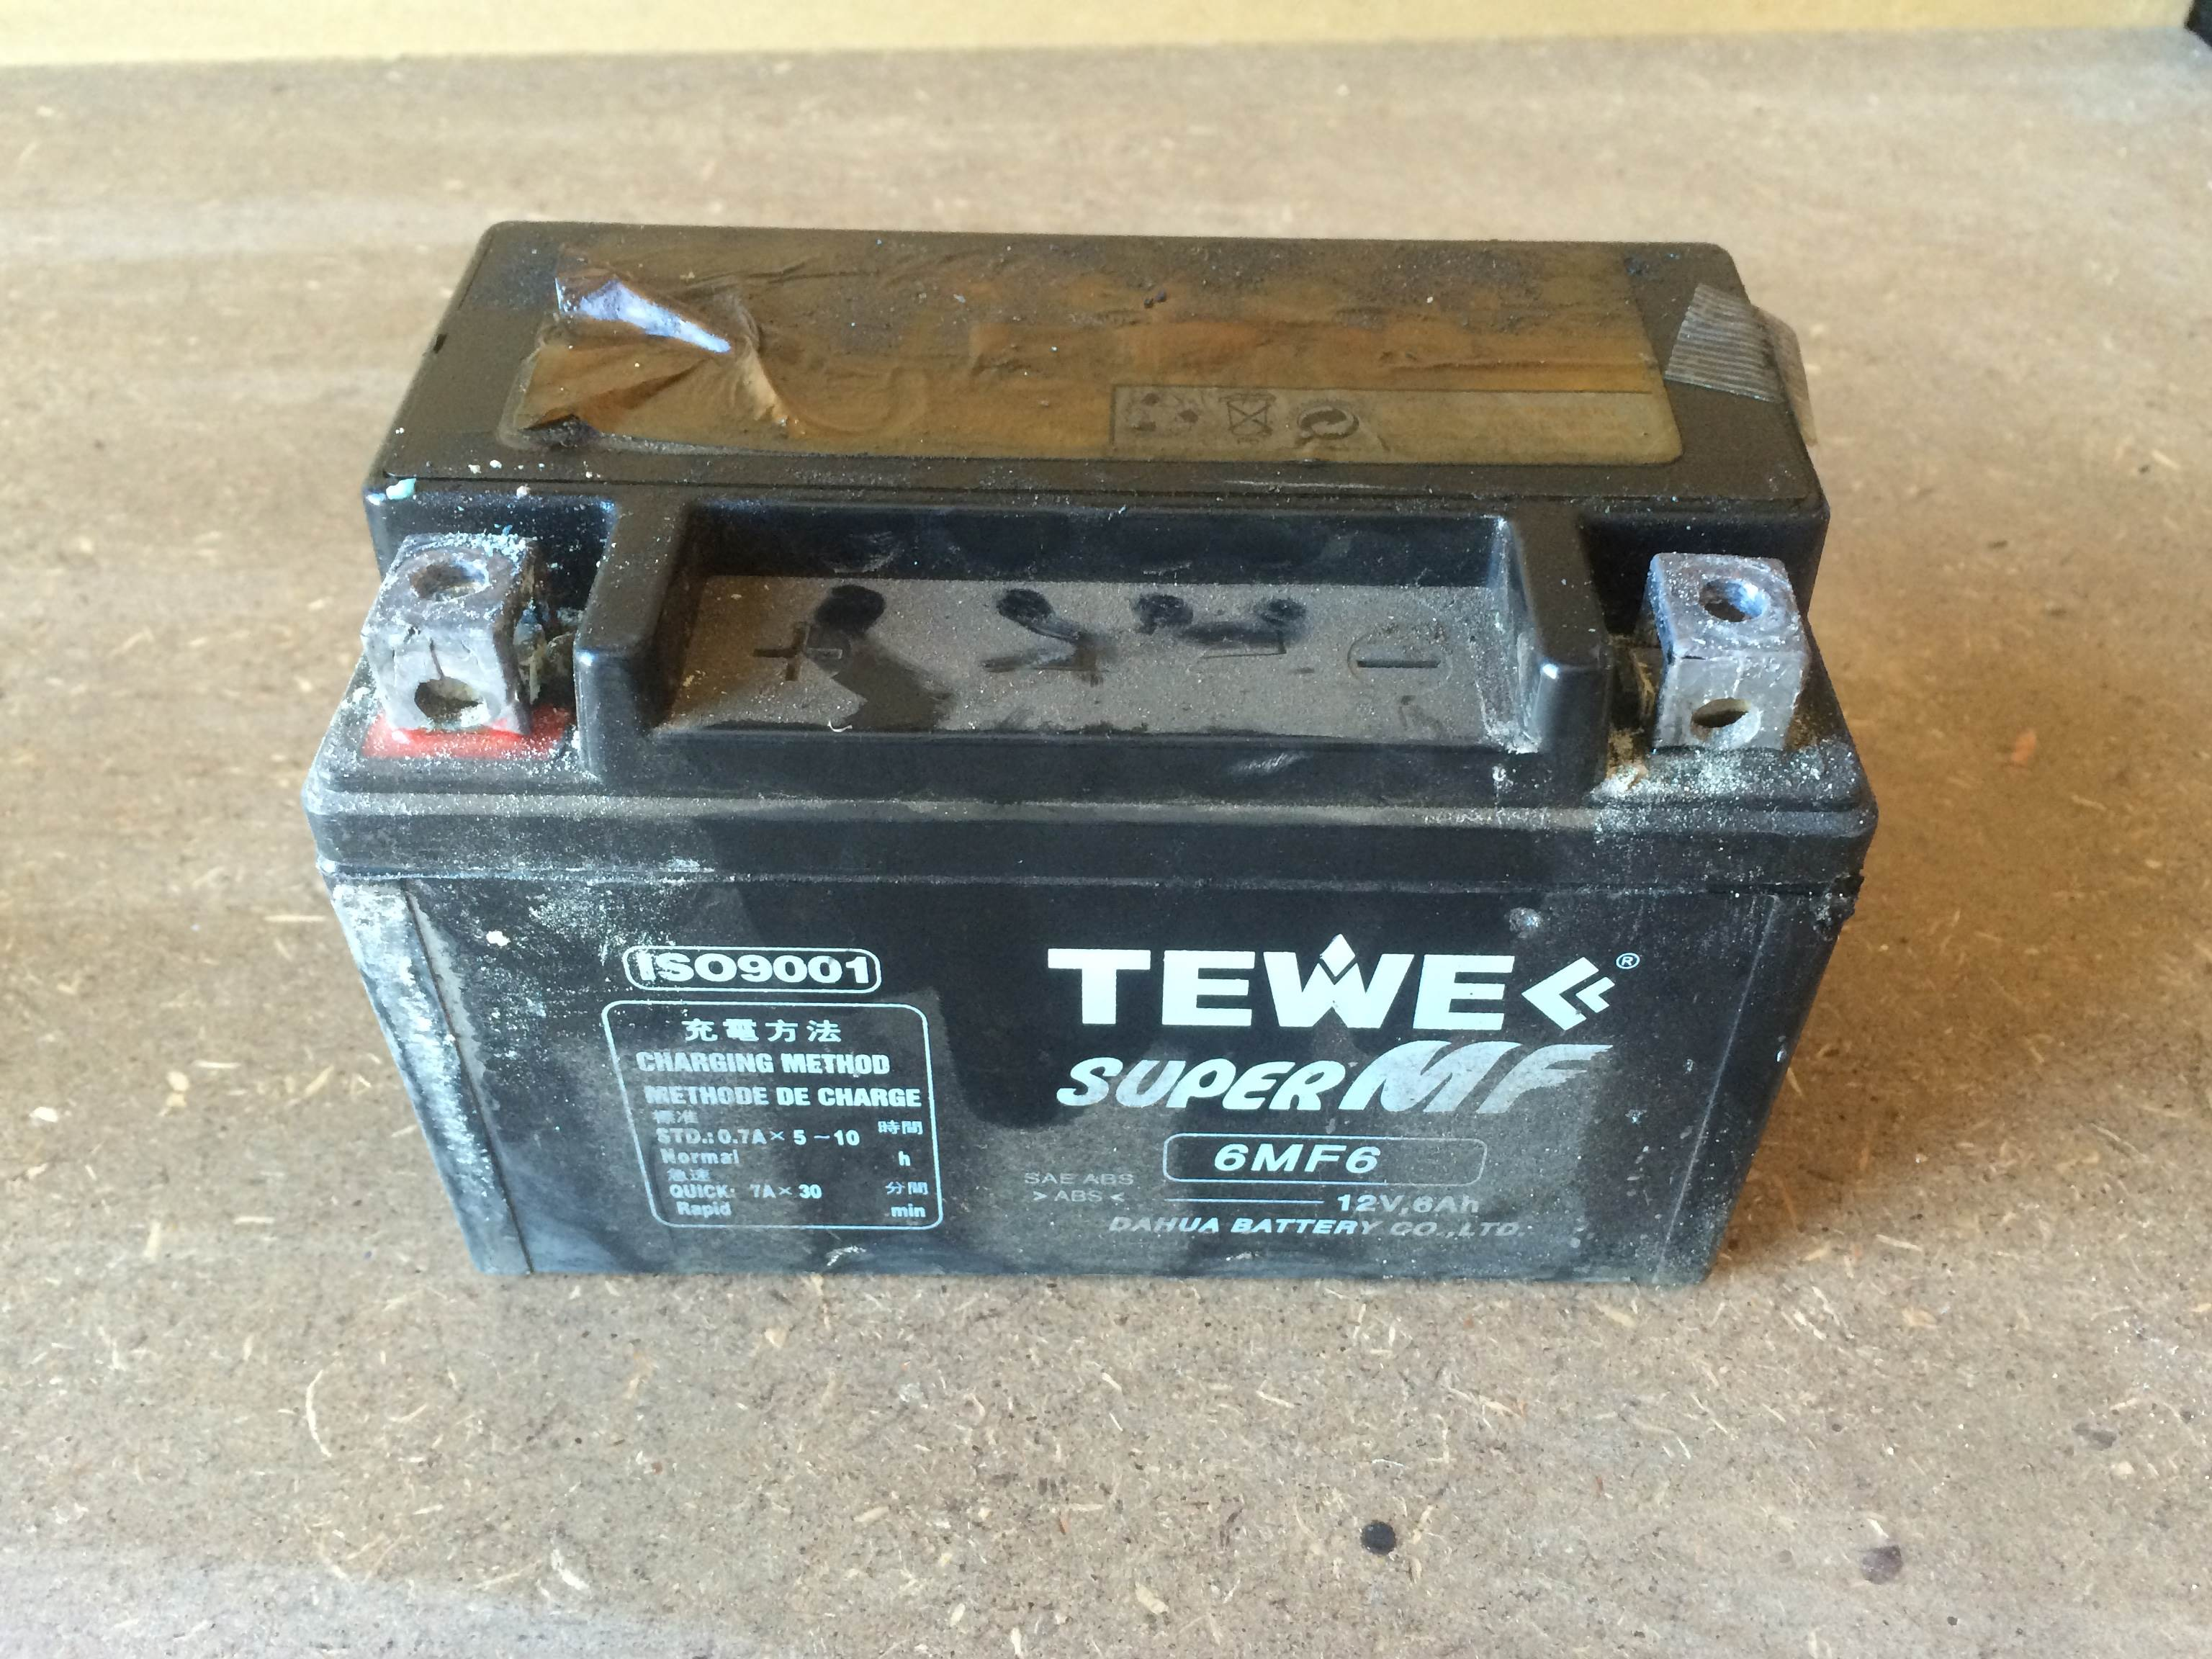 Recondition A Lead Acid Battery Dont Buy New One The Diy Life Of Plain Old Flooded Cell 12 Volt Marine You See Two Widely Take Out Vehicle And Put It Onto Solid Work Bench